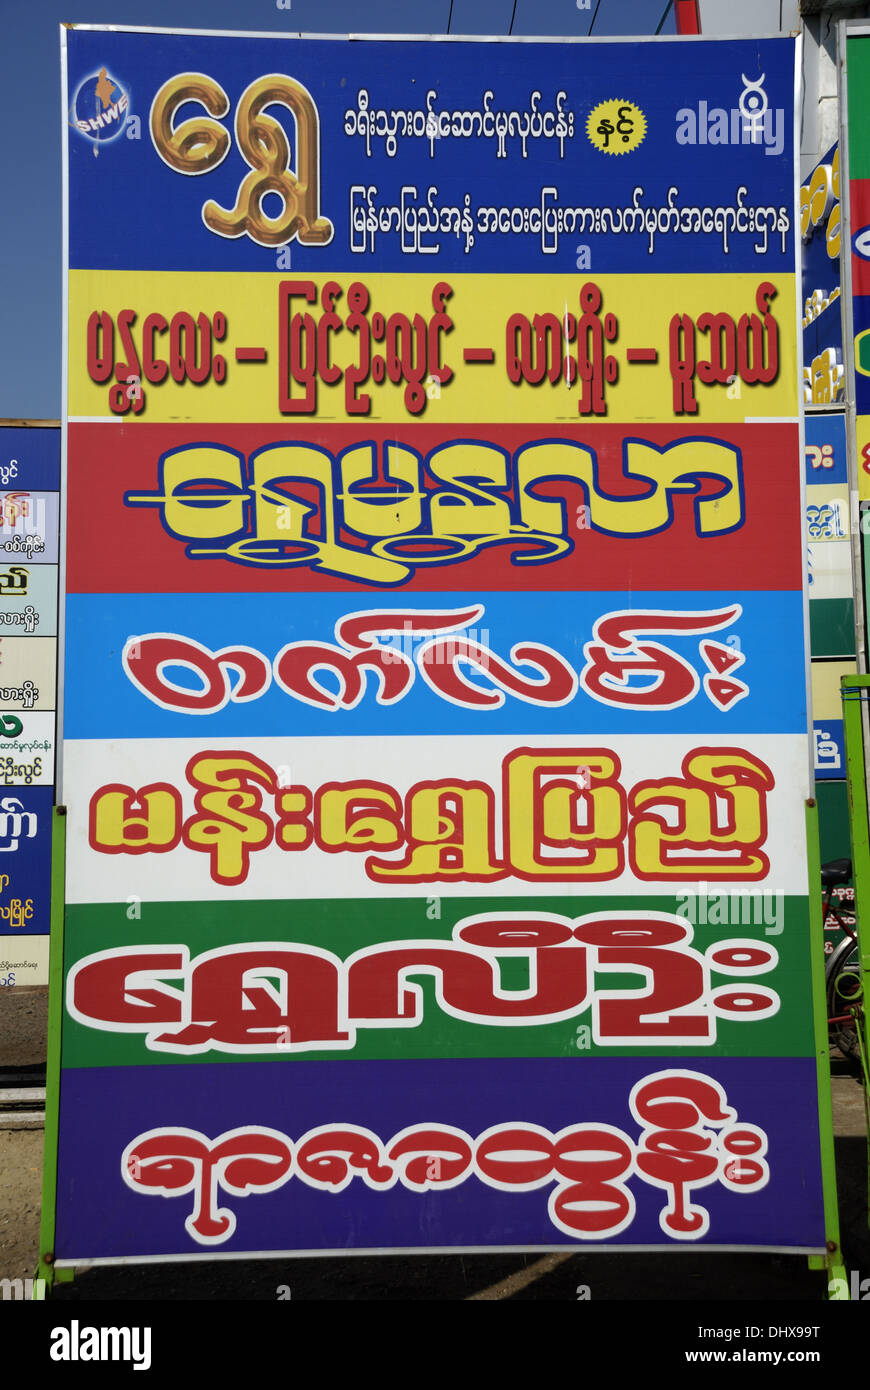 Burmese Advertizing Sign in Yangon - Stock Image